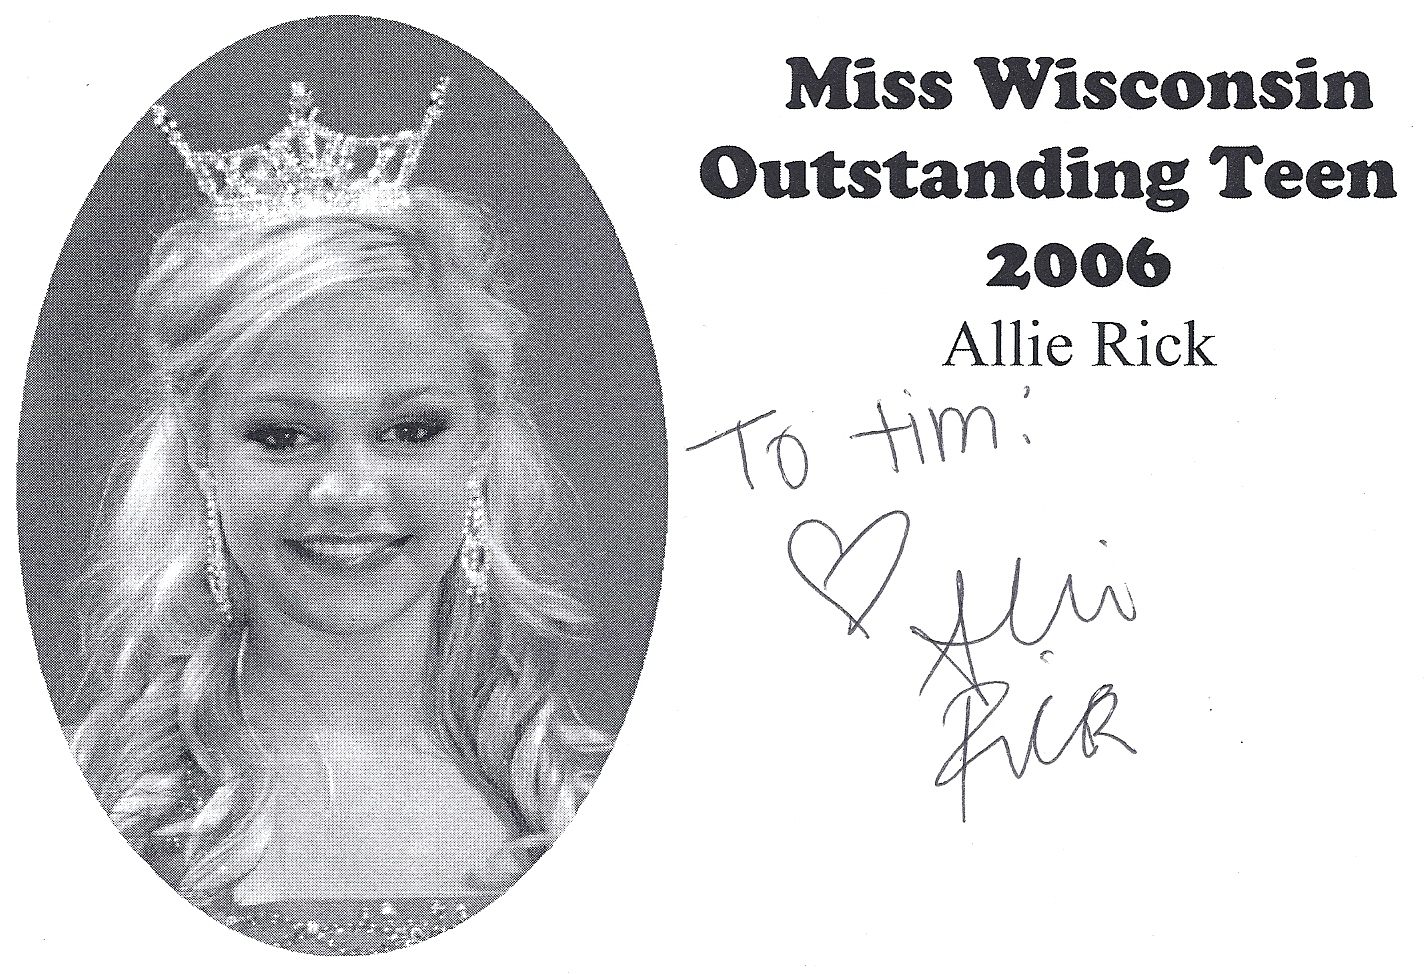 Allie Rick, Miss Wisconsin Outstanding Teen 2006